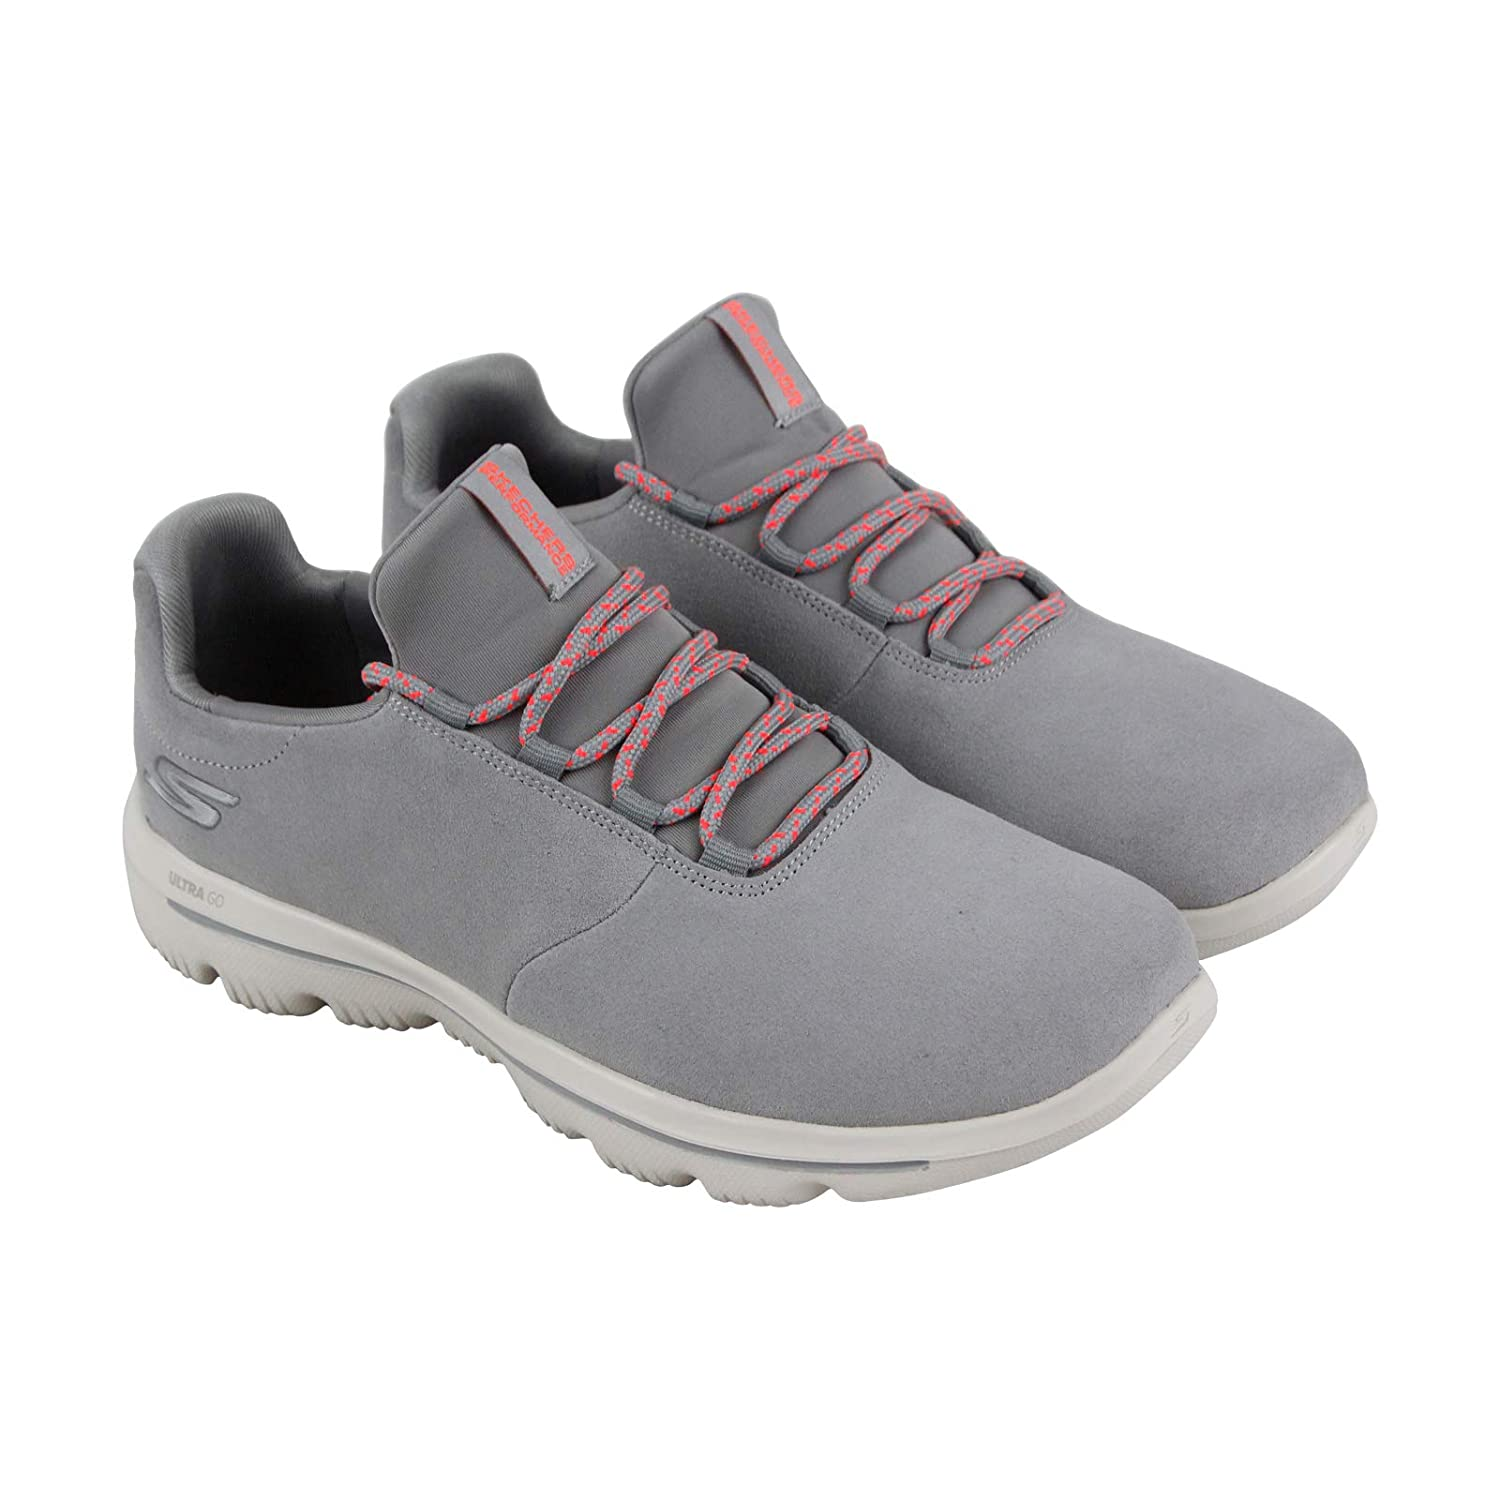 SkechersGOwalk Evolution Gowalk Ultra Granted - Gowalk Evolution Evolution Ultra Damen 6eb310